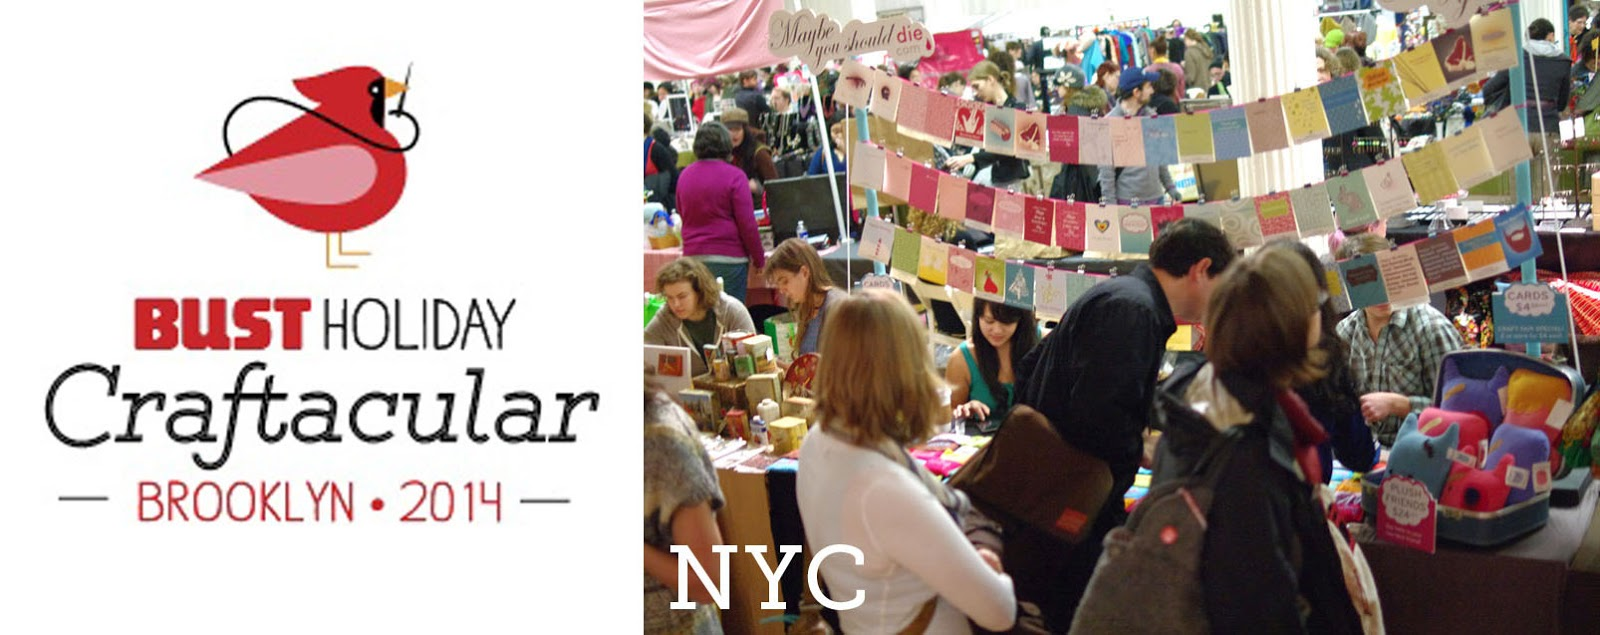 http://bust.com/new-york/bust-holiday-craftacular-brooklyn.html